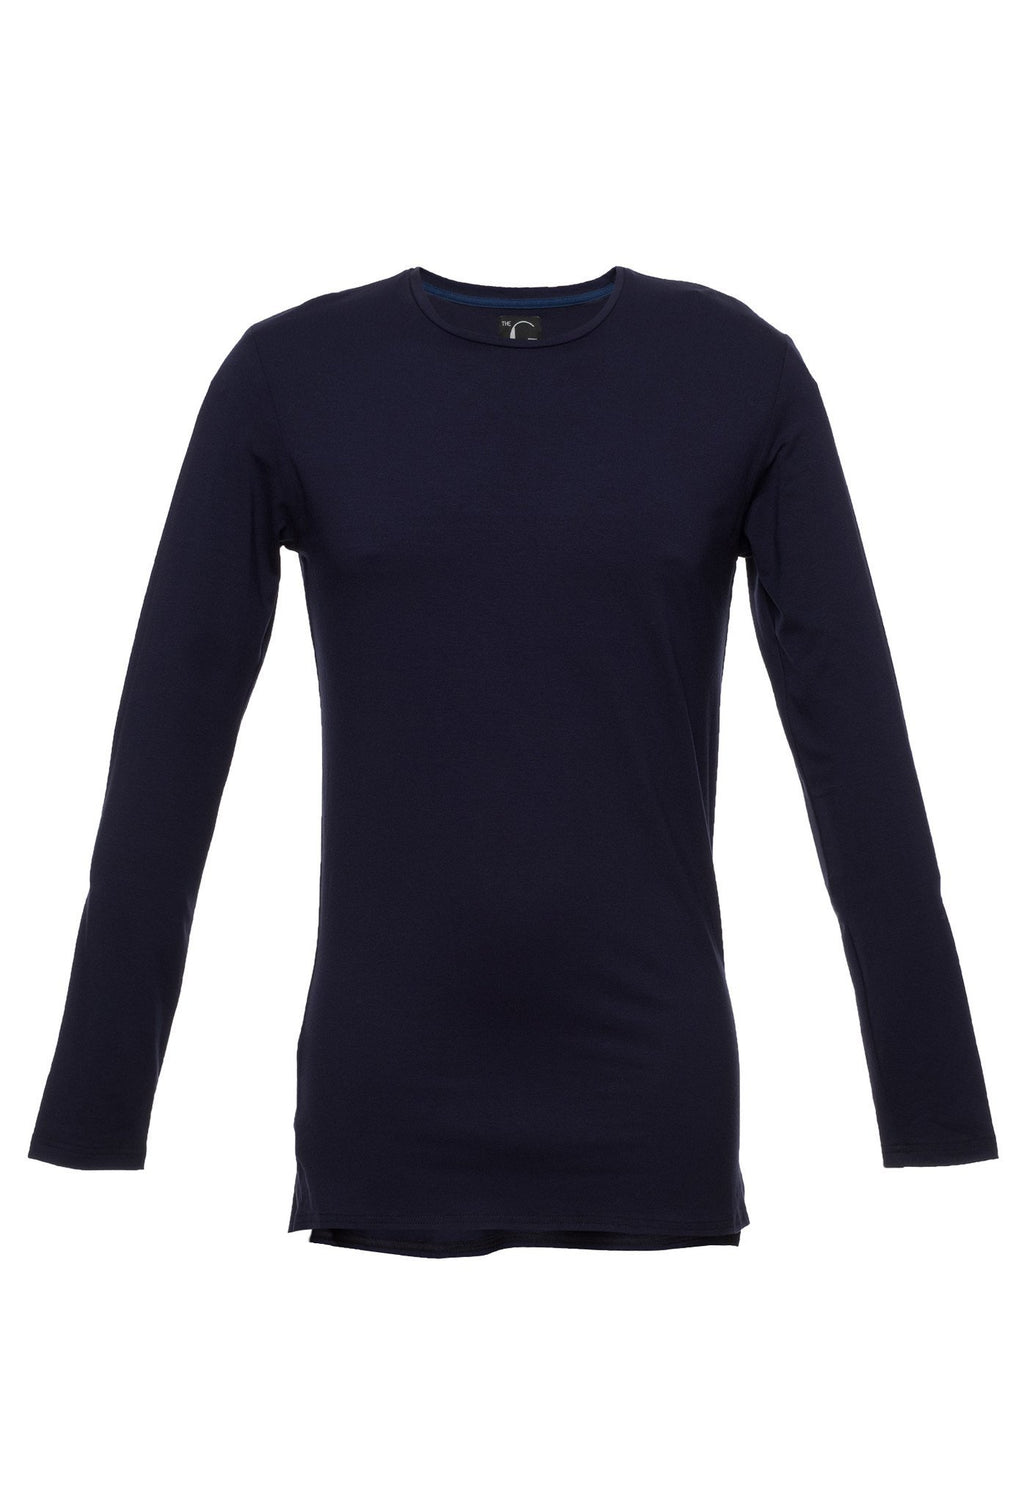 TheG viscose handmade designer under long tee navy blue